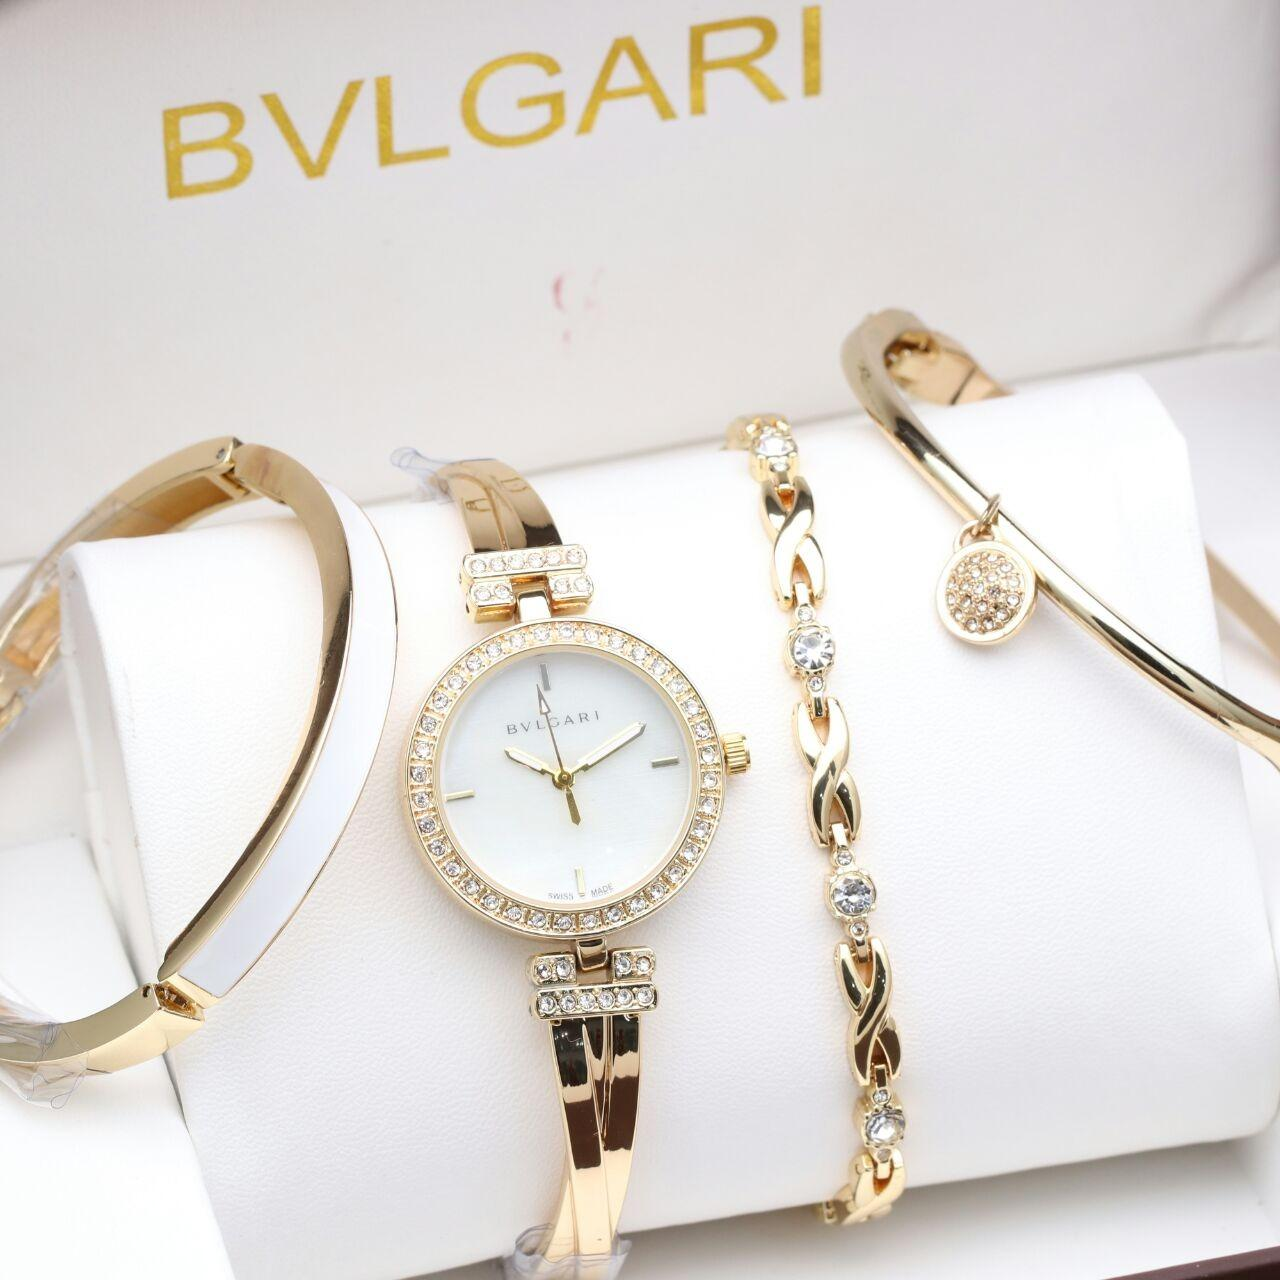 Jam Tangan Bvlgari Diamond Plus Paket 3 Set Gelang Original - Gold